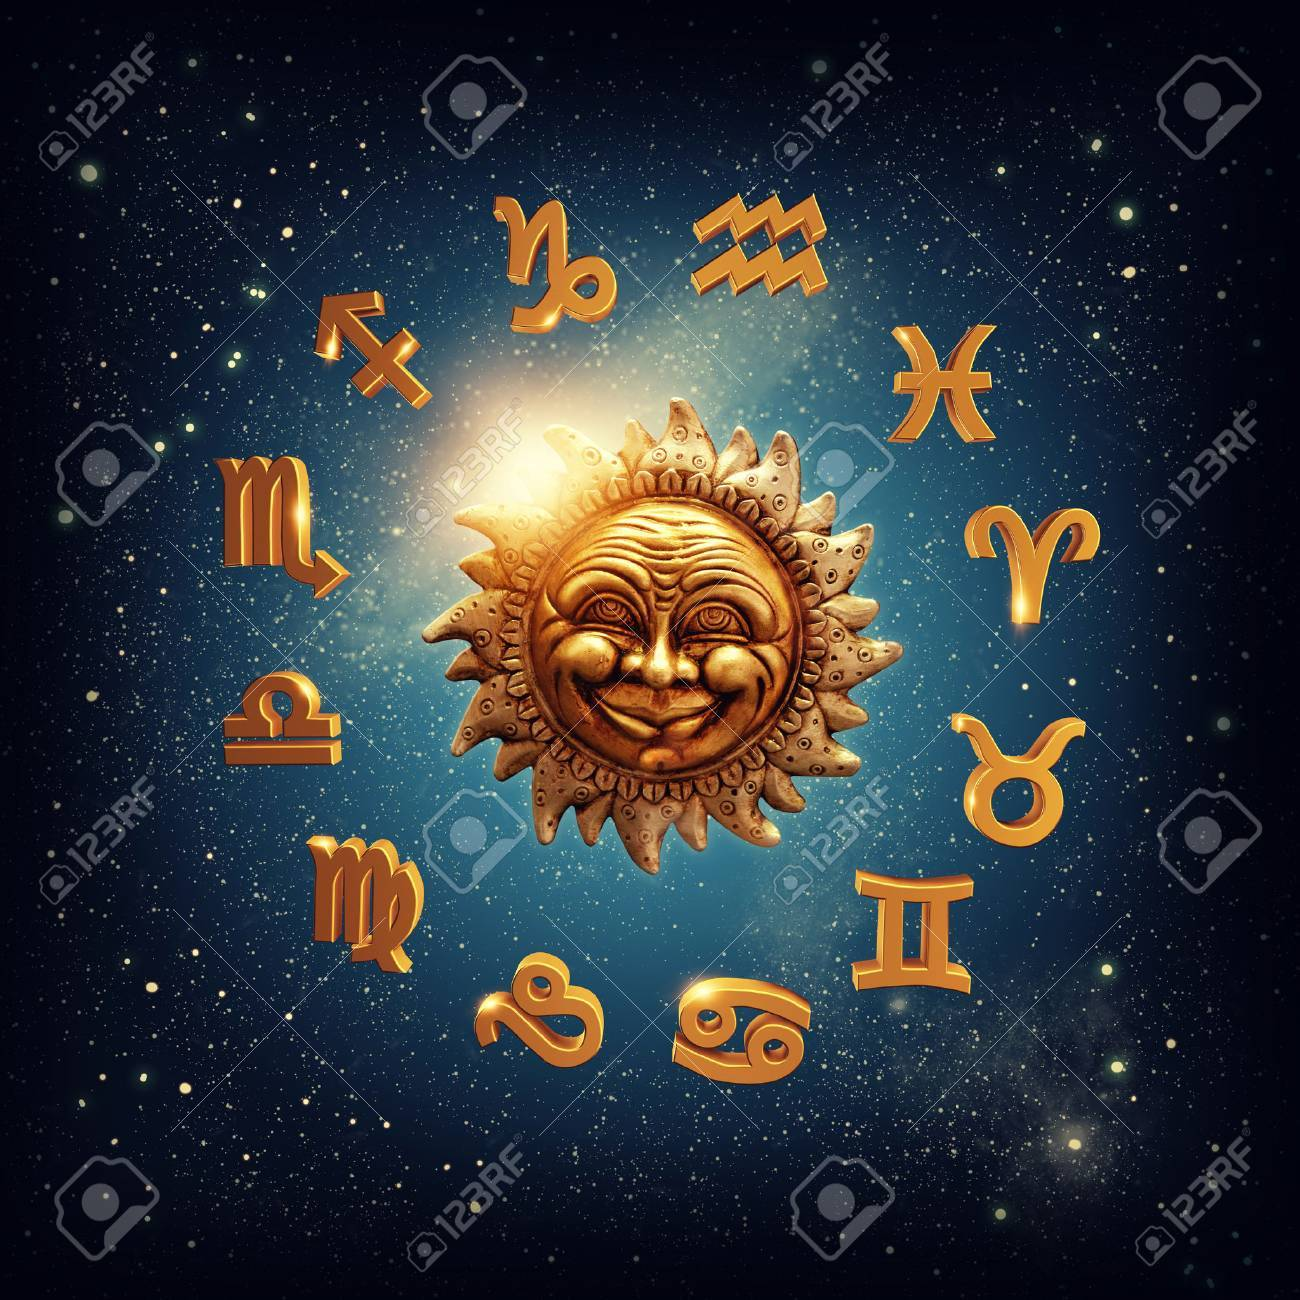 The sun surrounded by zodiac signs - 51982445